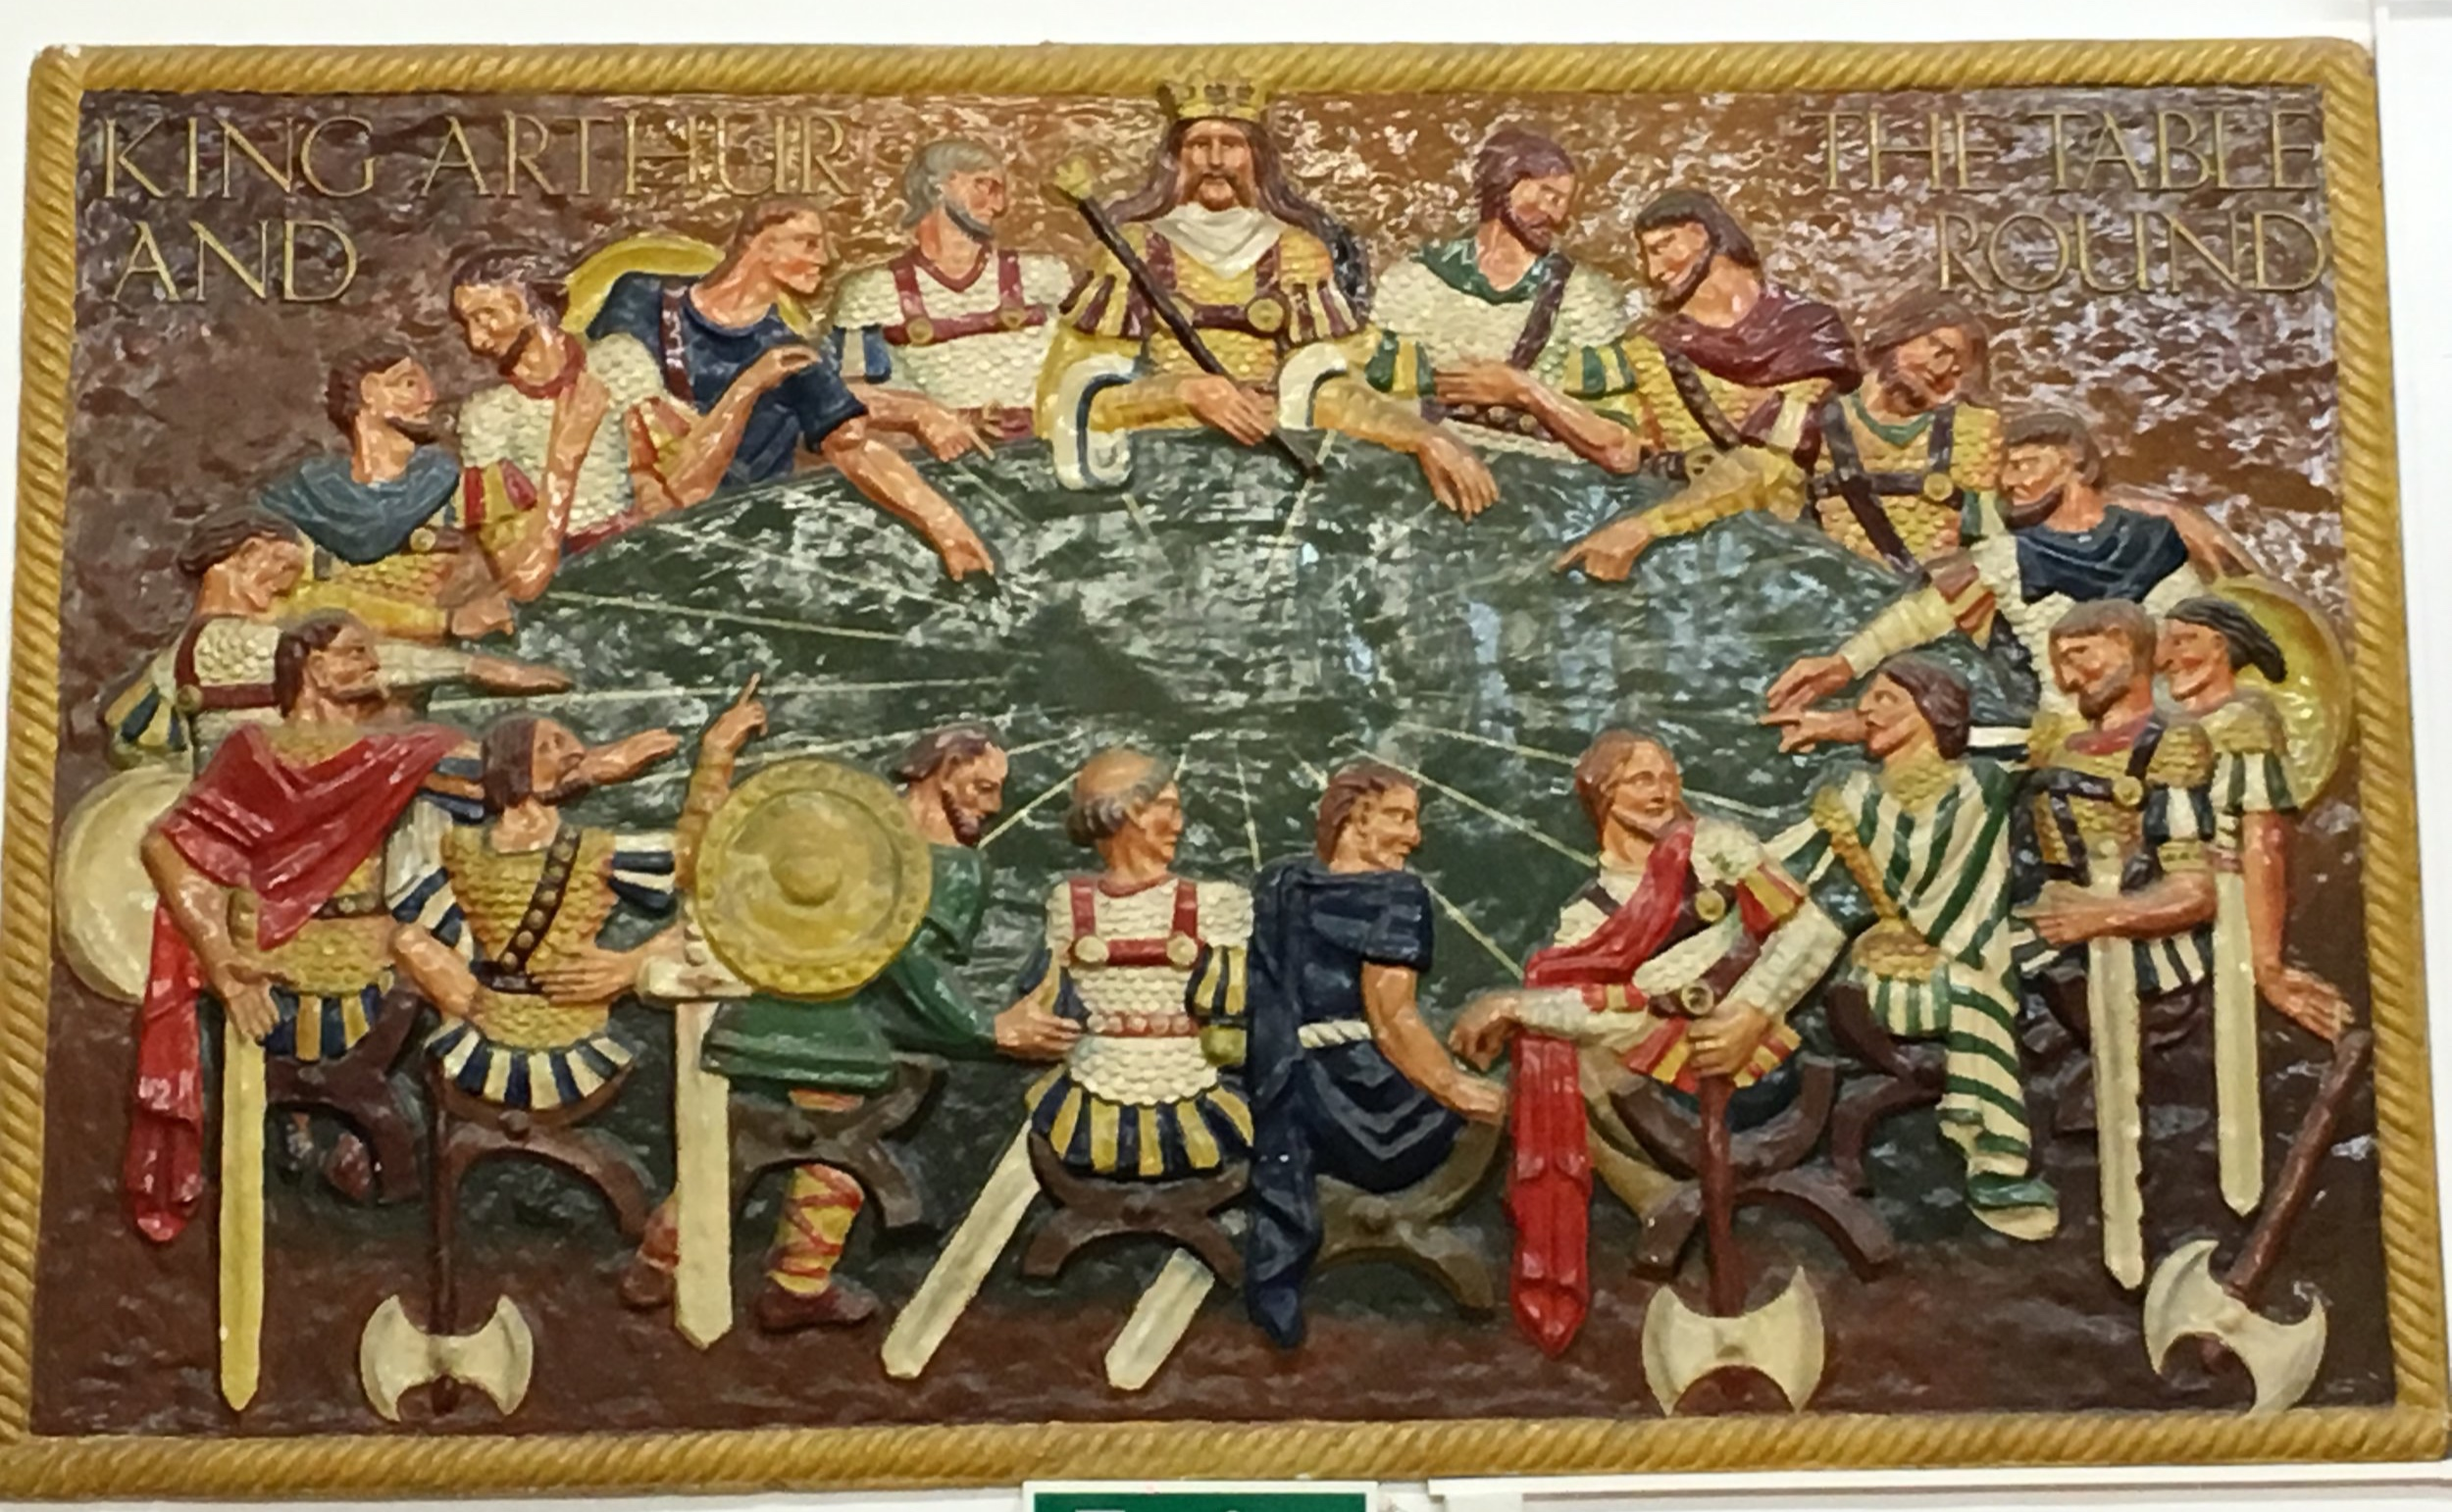 King Arthur and the round table, Stanmore Primary School